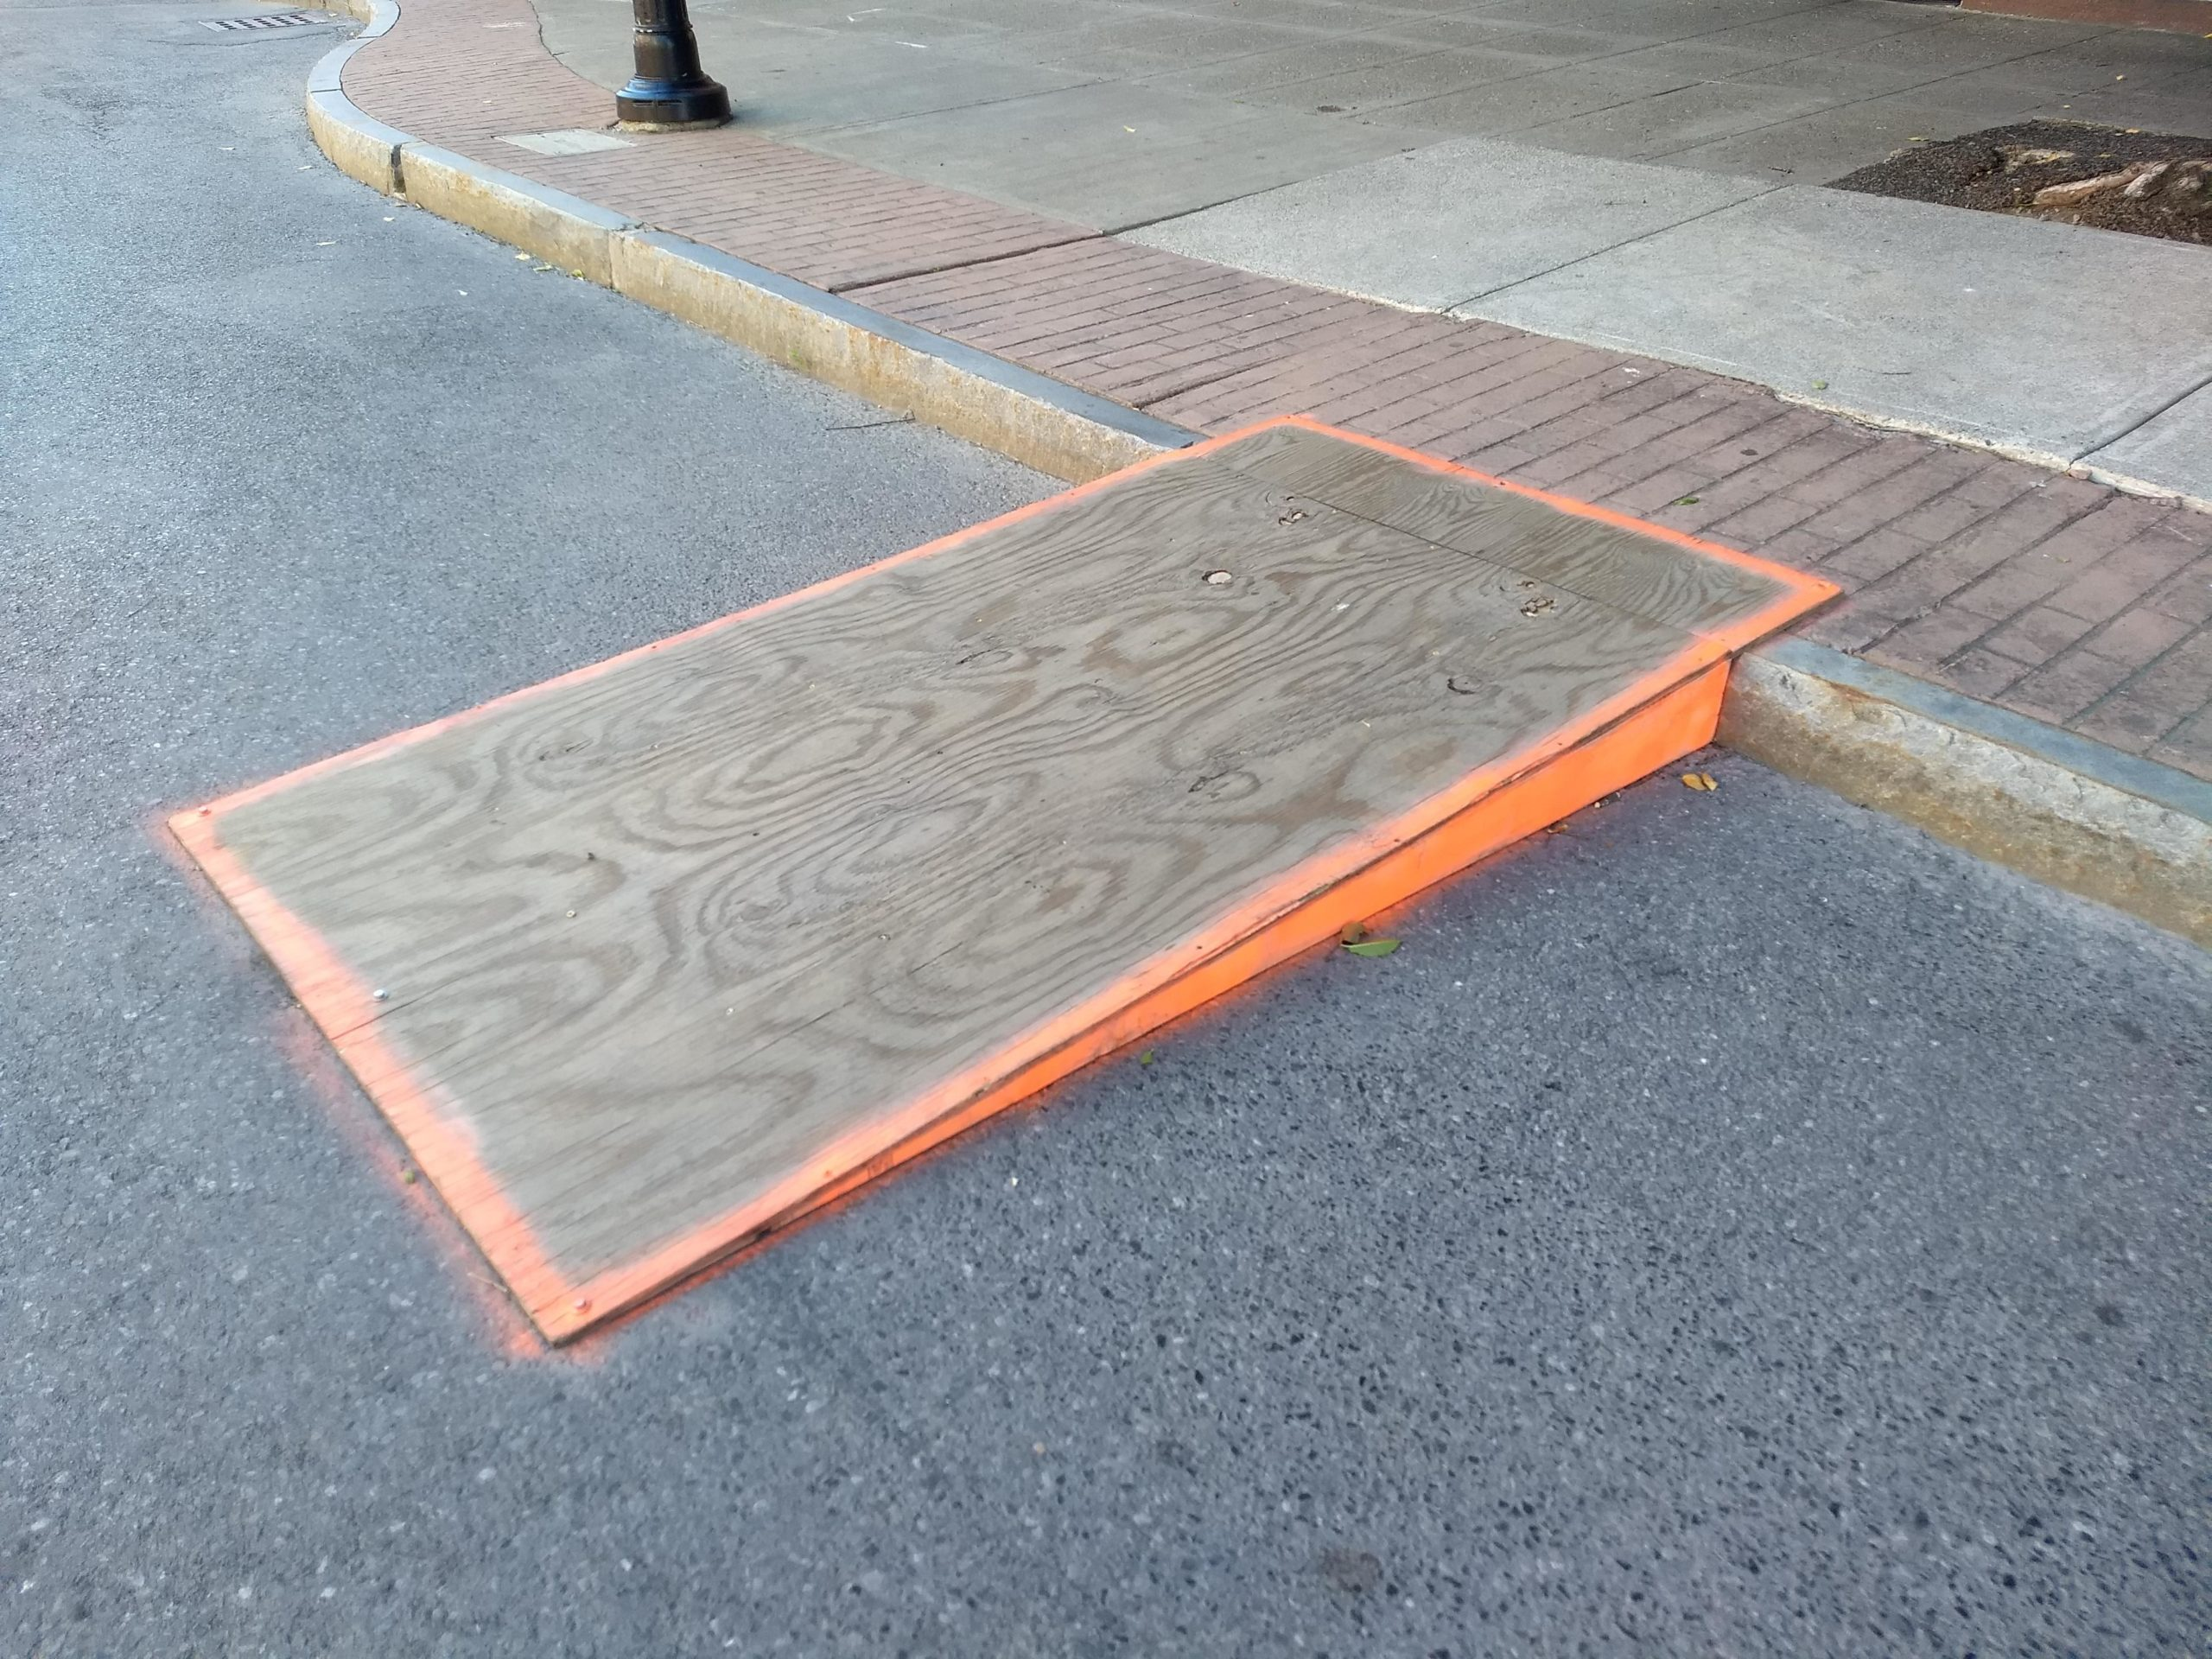 Wooden ramp between sidewalk and Aurora Street